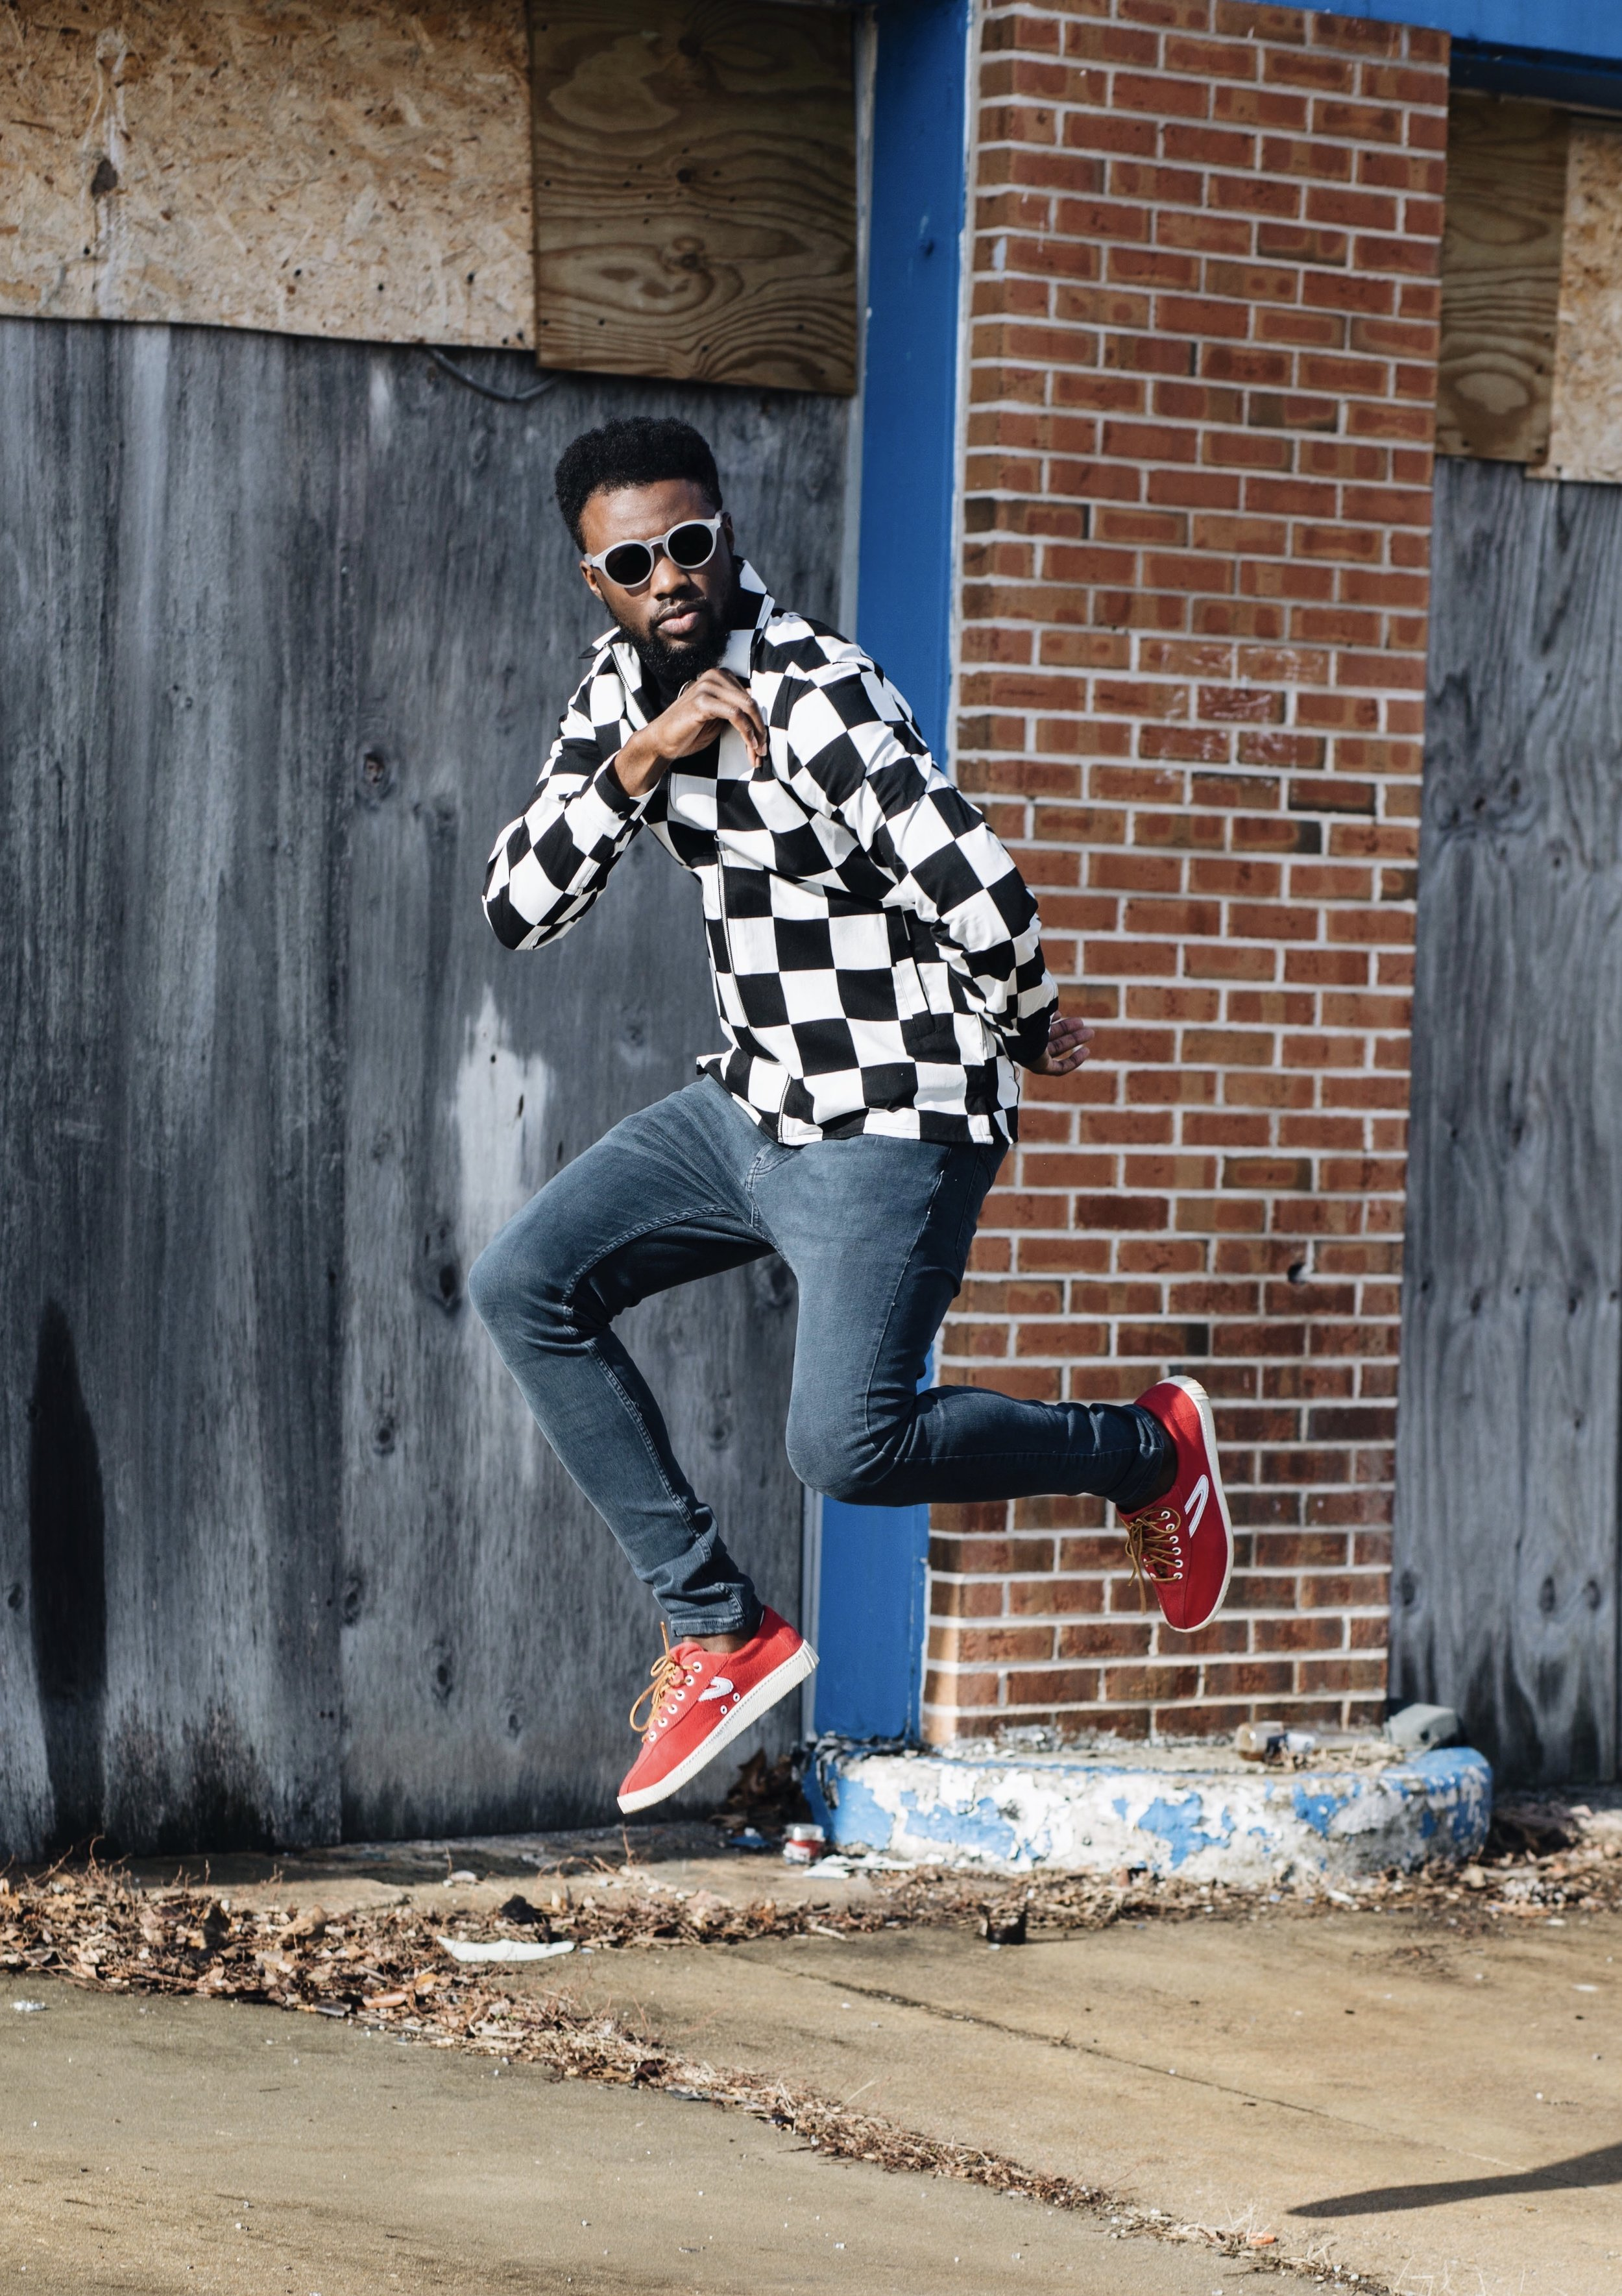 The Creative Gentleman is wearing blue Topman jeans,Topman black and white checkered shirt, red Tretorn Nylite sneakers, and sunglasses. The Creative Gentleman created this image as part of collaboration with Topman for their celebration of being the destination for denim.